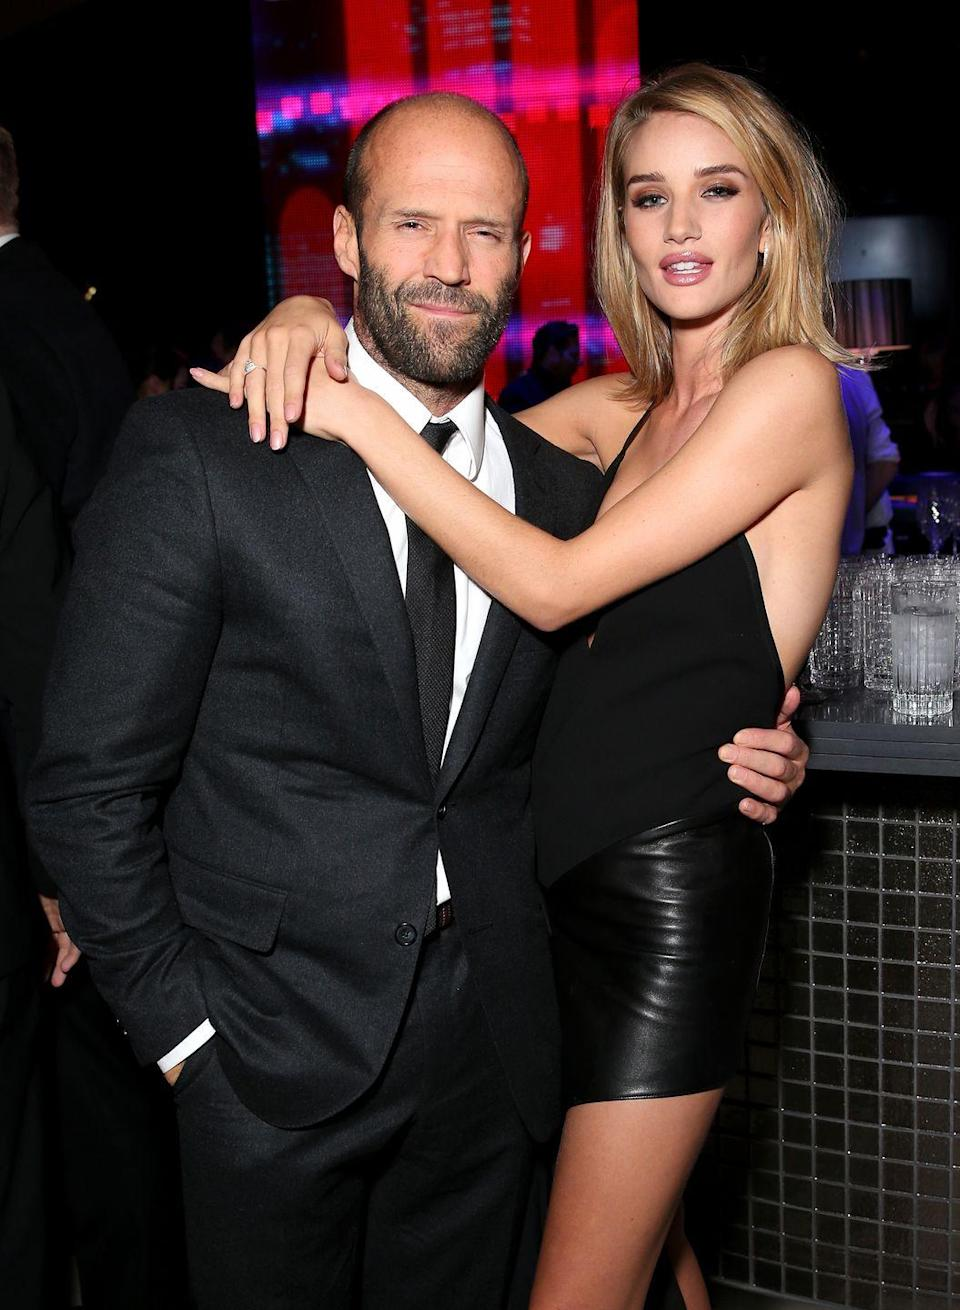 <p><strong>Age gap: </strong>20 years</p><p>Jason and Rosie met while filming <em>Transformers: Dark of the Moon</em> together in 2010 and began dating the same year. The two have been engaged since 2016 and welcomed their son, Jack Oscar Statham, a year later.</p>